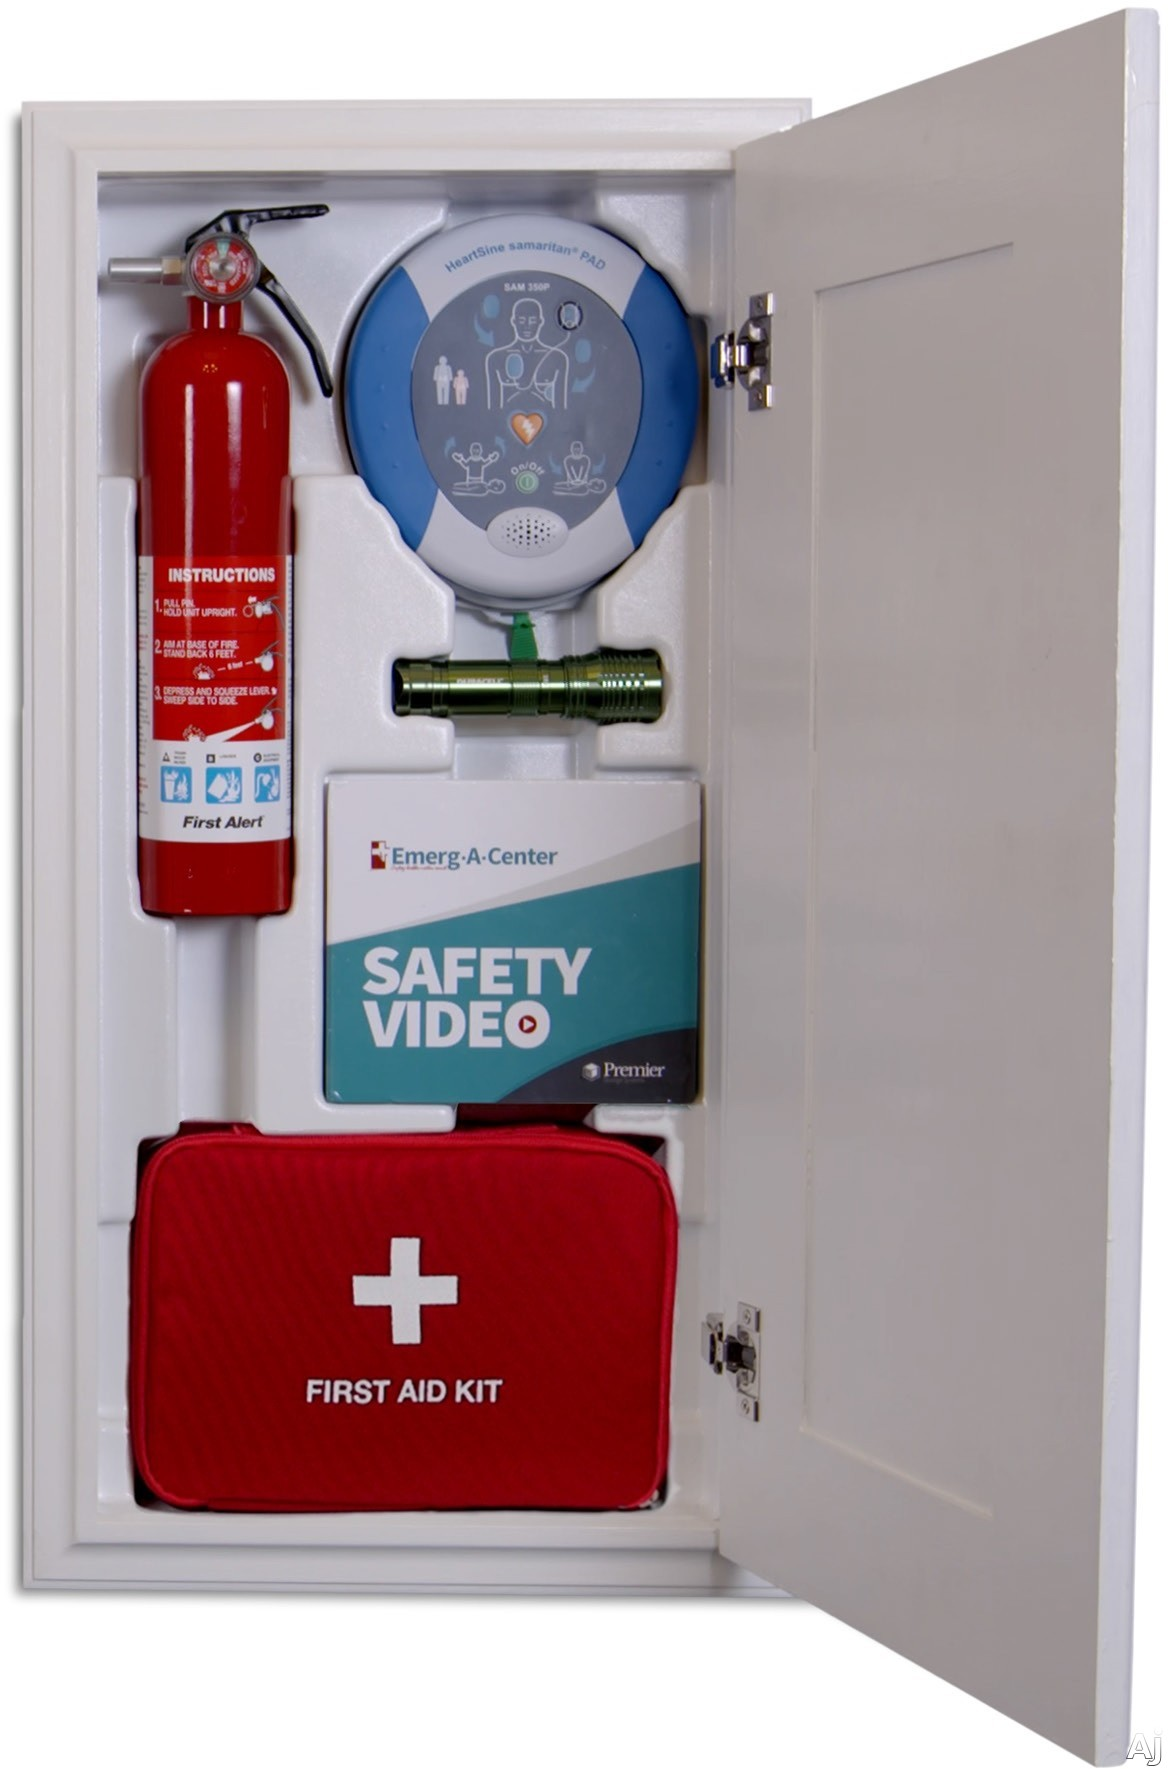 Iron A Way EACHO Safety Command Center with Automated External Defibrillator First Aid Kit Fire Extinguisher Flashlight and Instructional Video